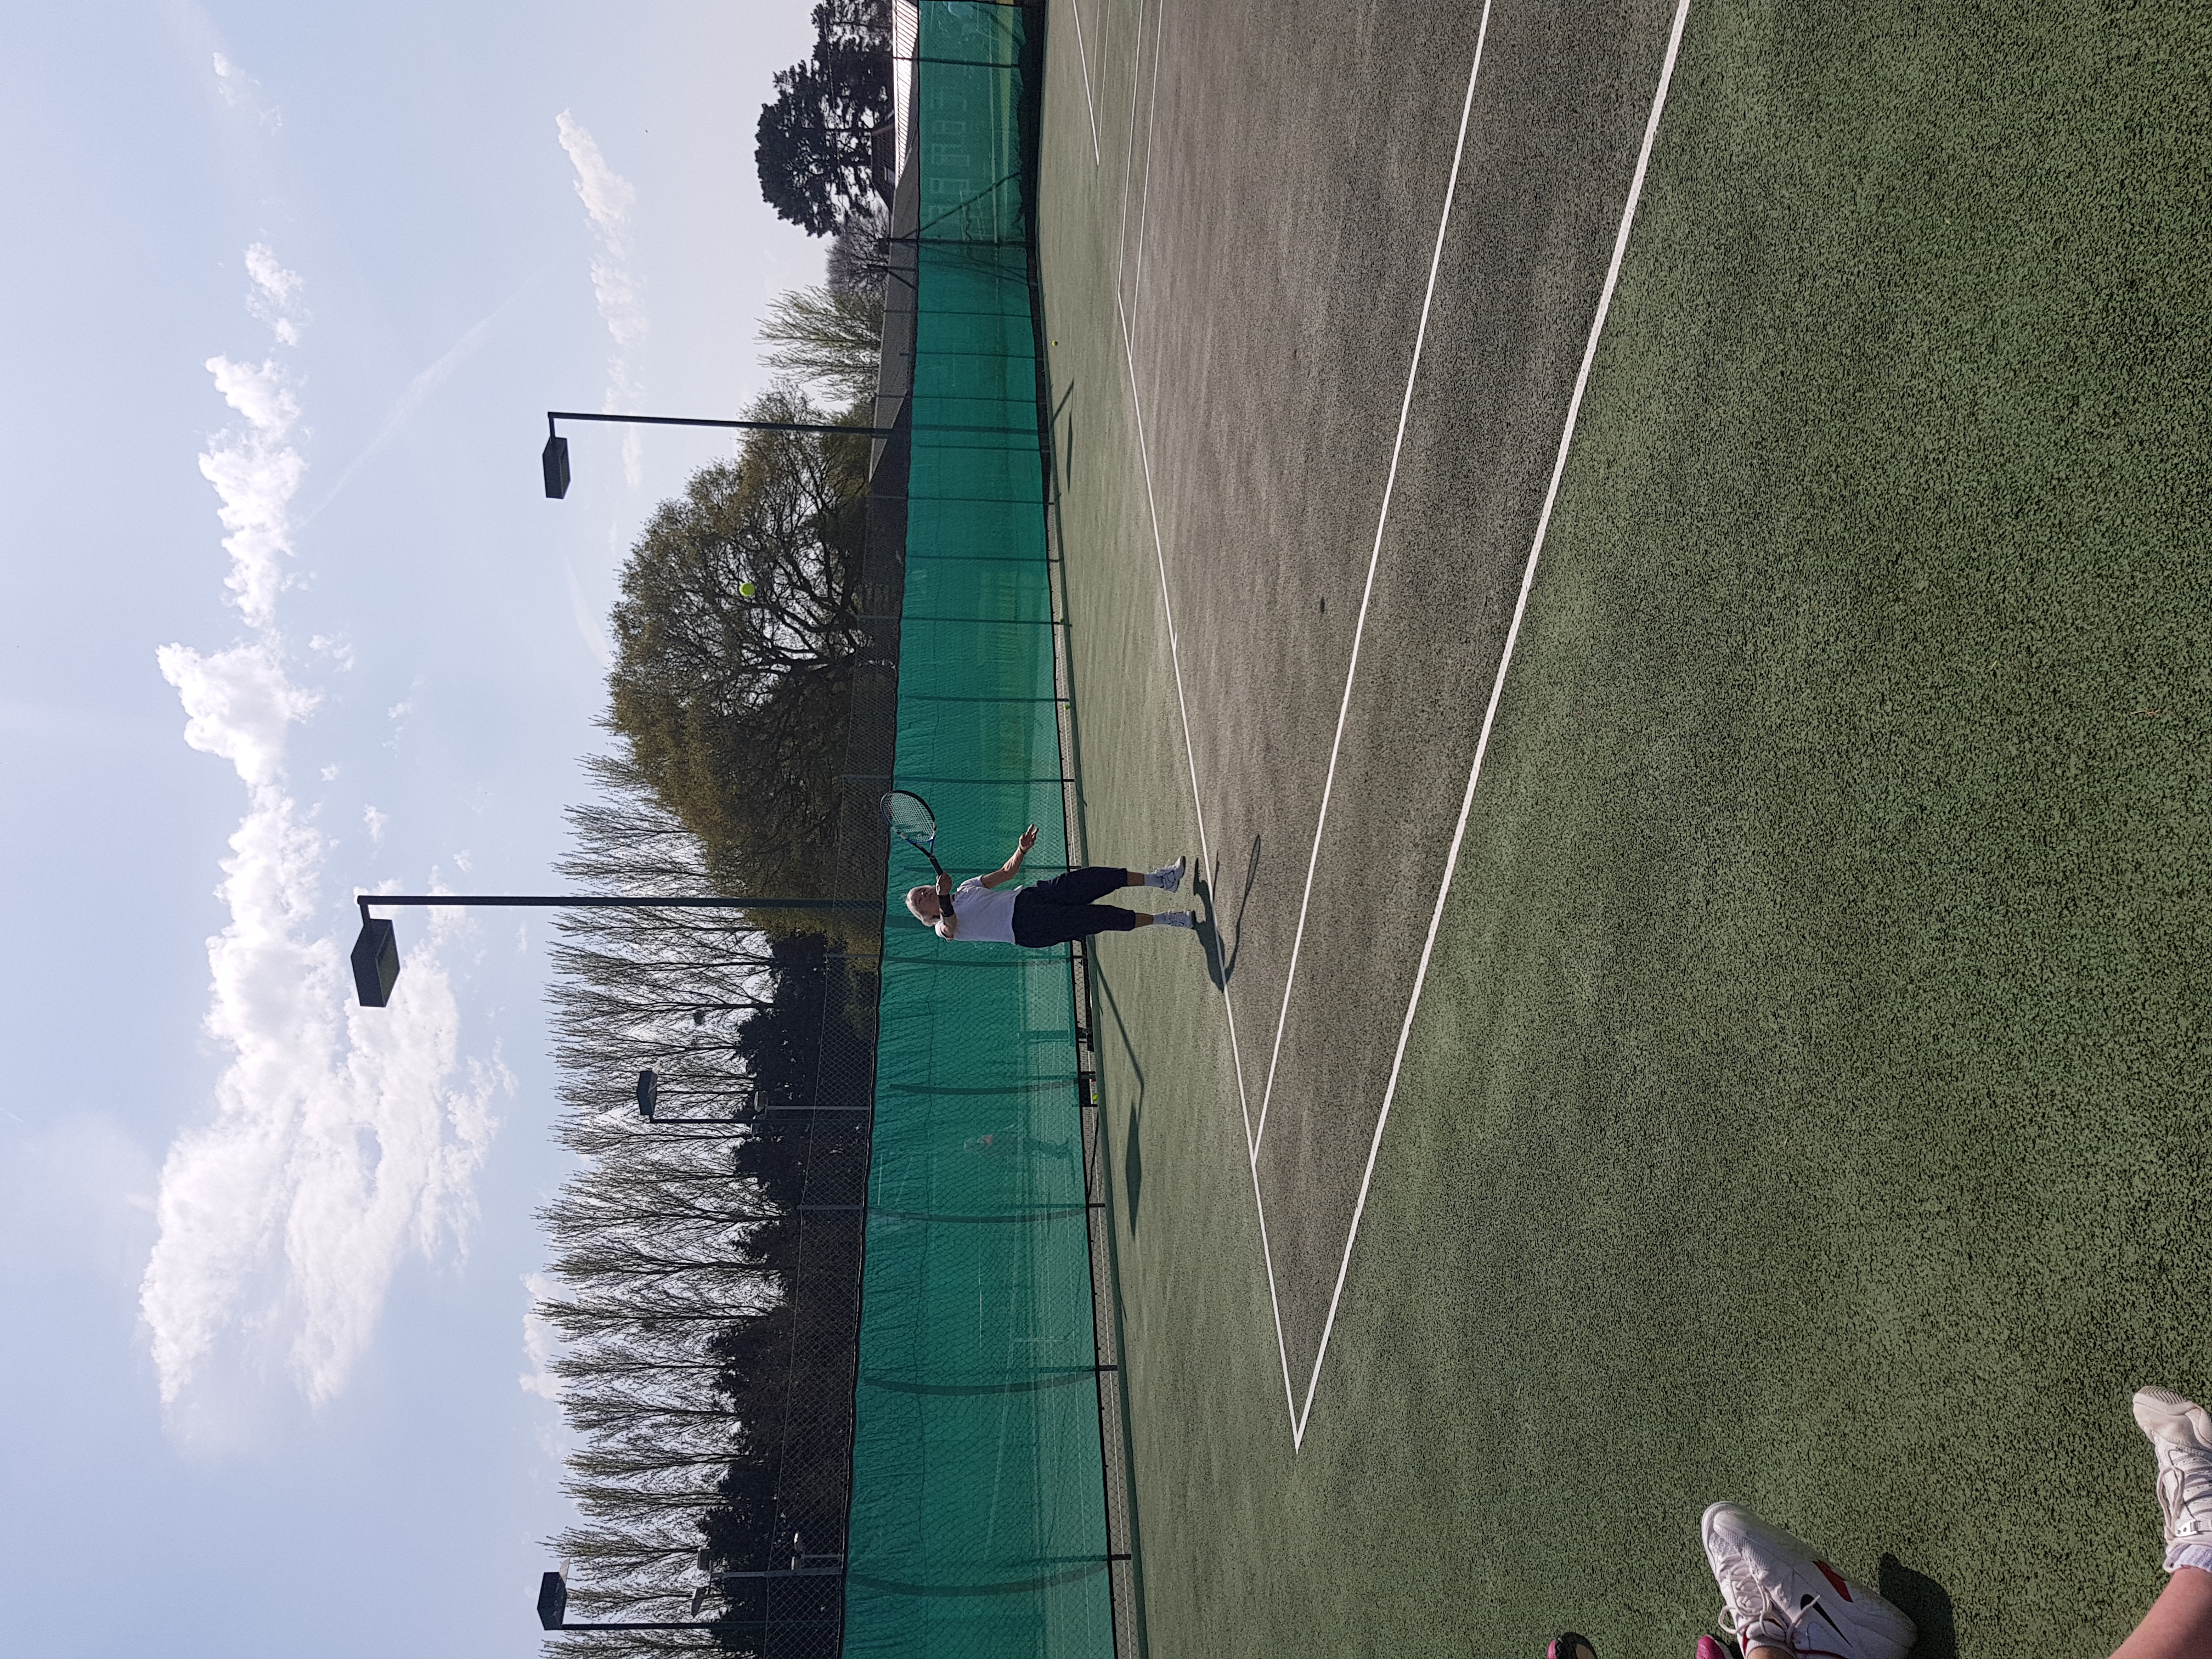 Gill serving